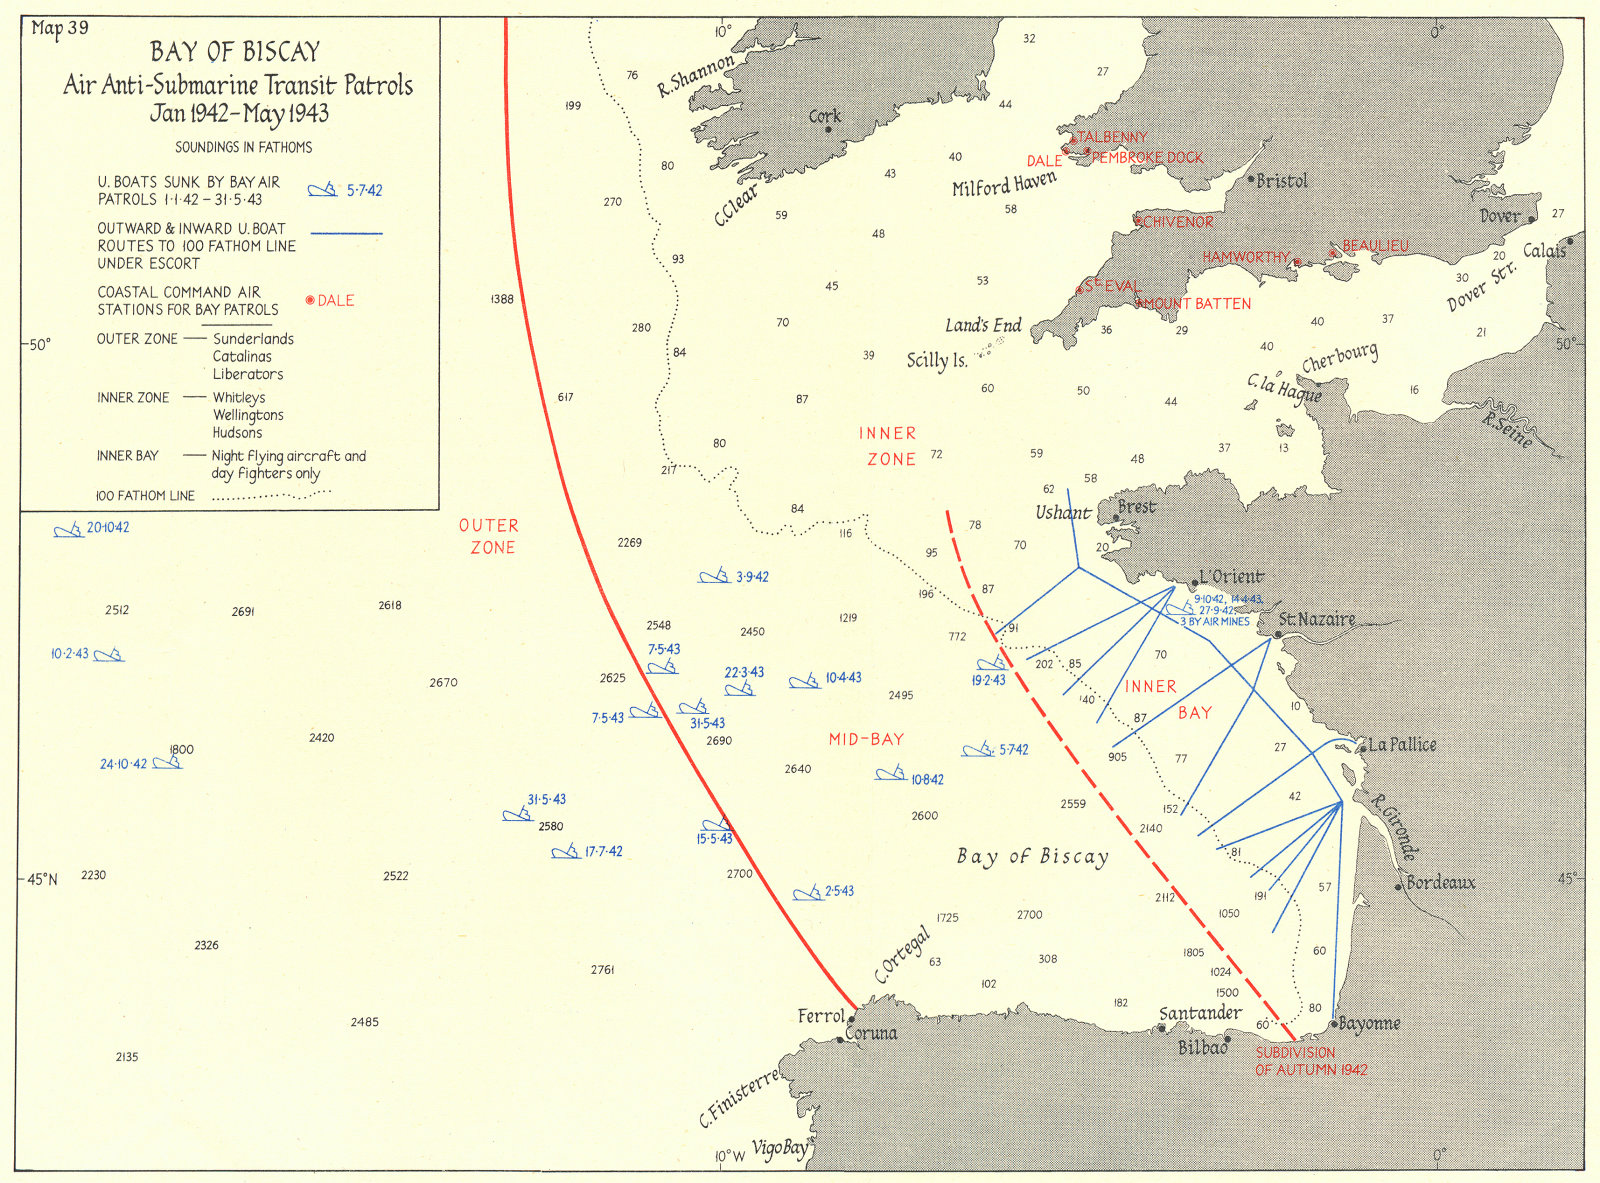 BAY OF BISCAY. Air Anti-Submarine Patrols 1942-43 1956 old vintage map chart